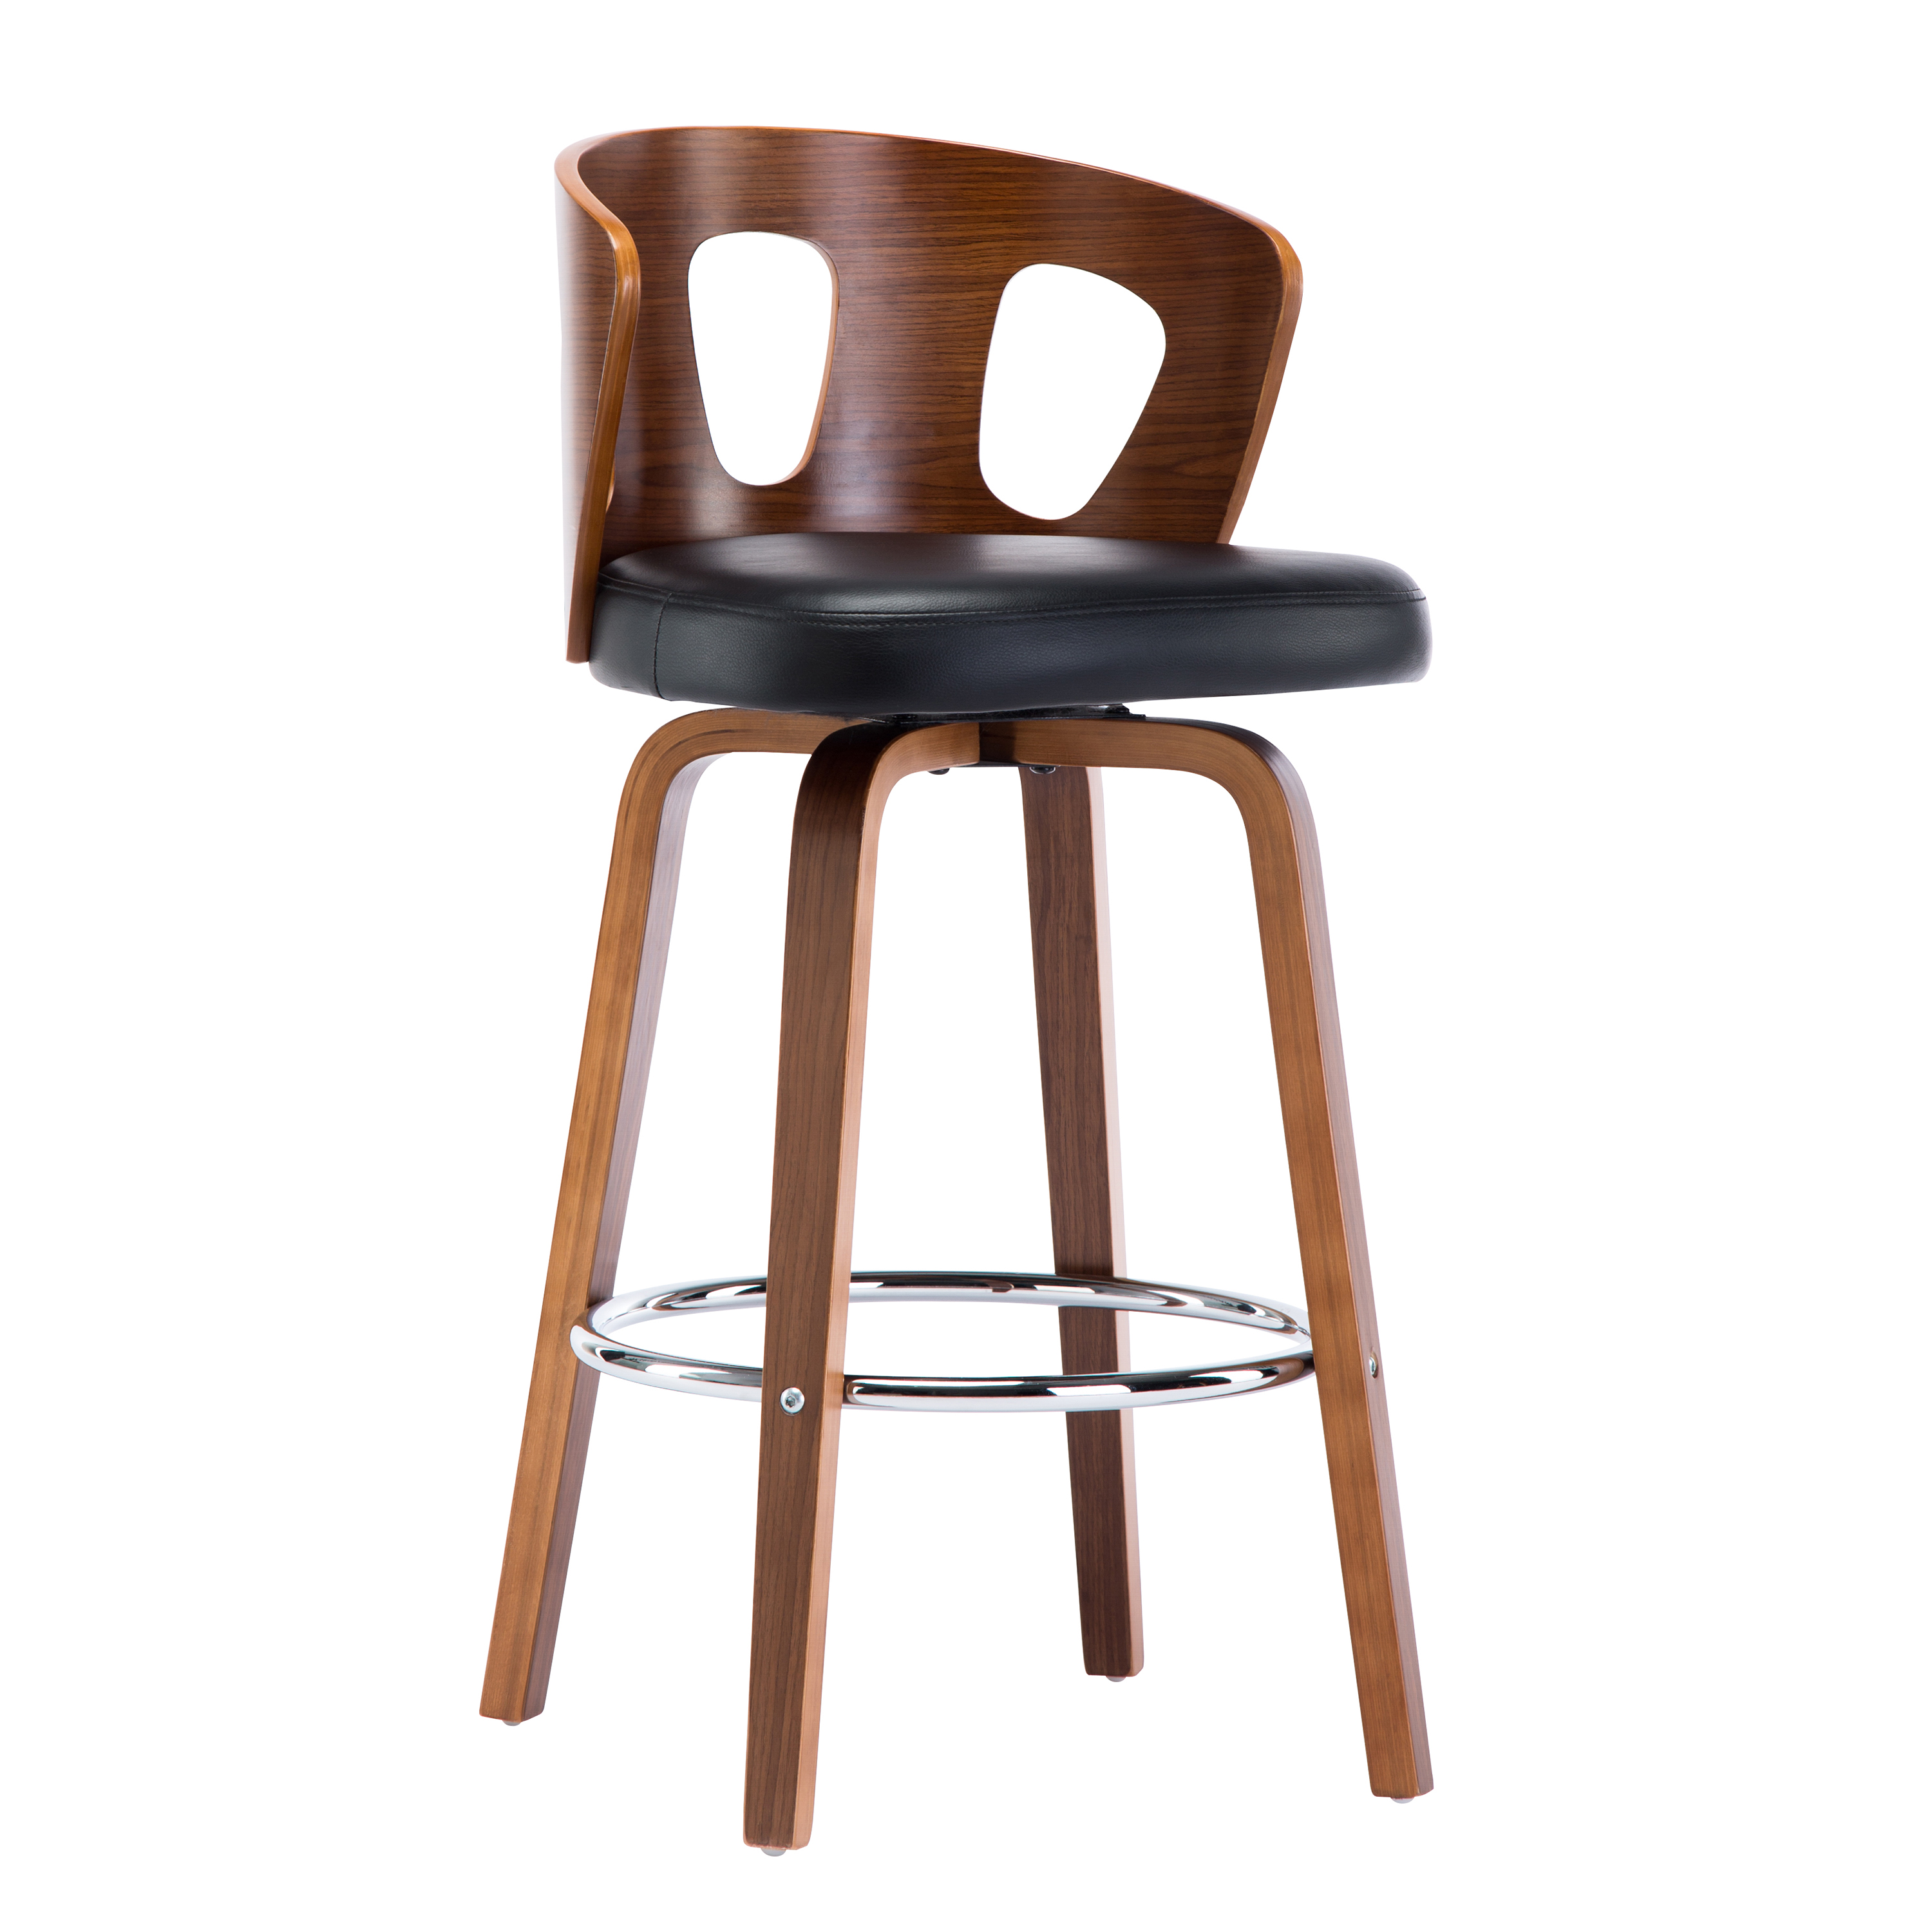 Wood And Black Faux Leather Mid Century Modern Swivel Barstool With Decorative Back 26 Inch Seat Height Christies Home Living